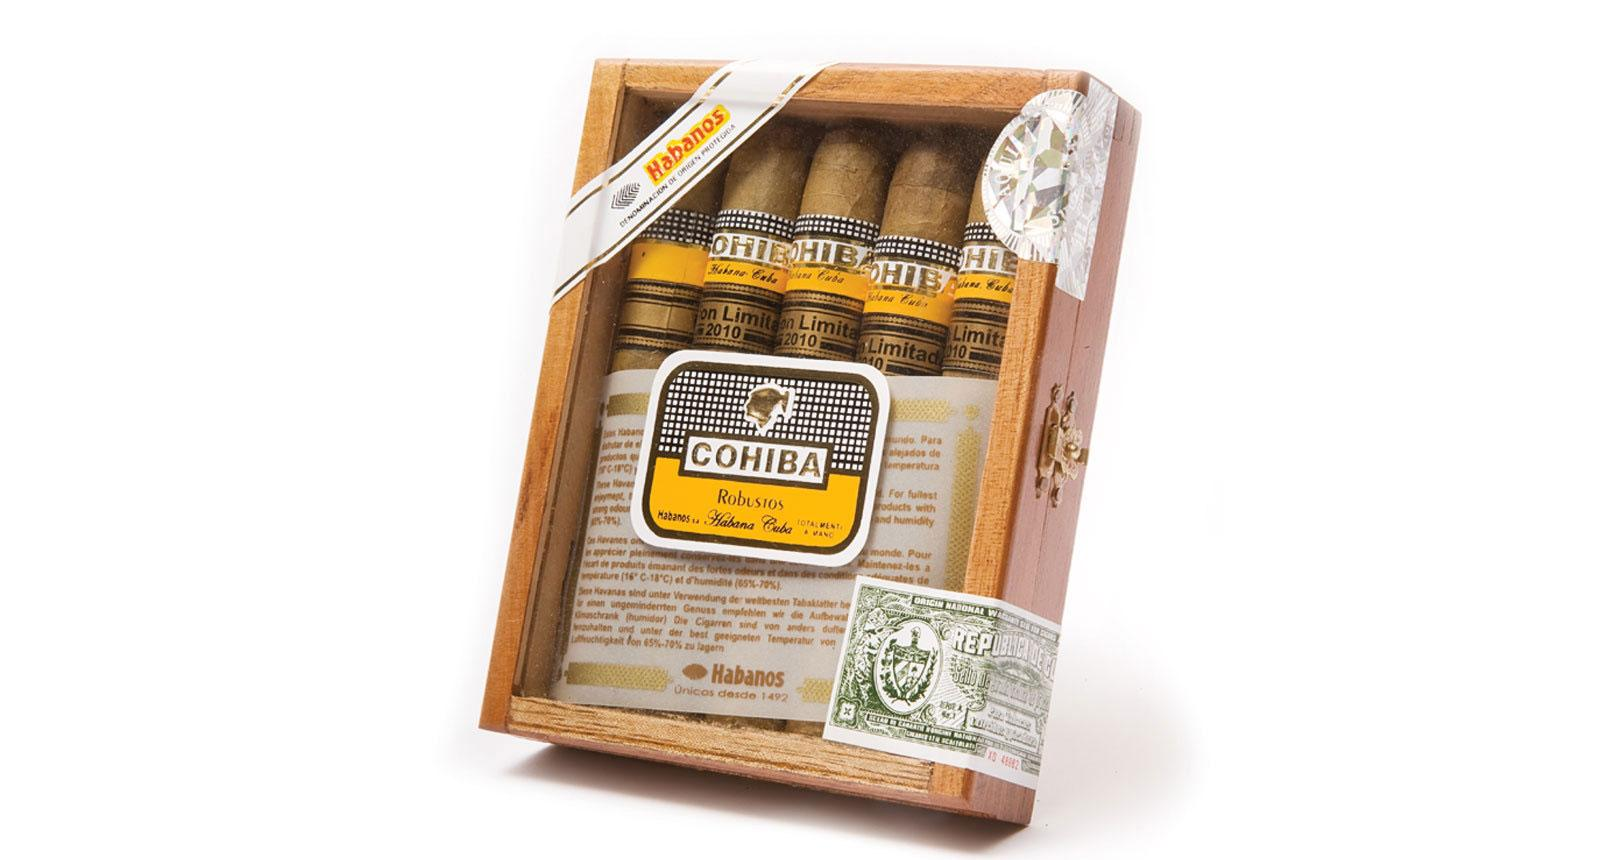 A glass-top box of fake Cohibas.